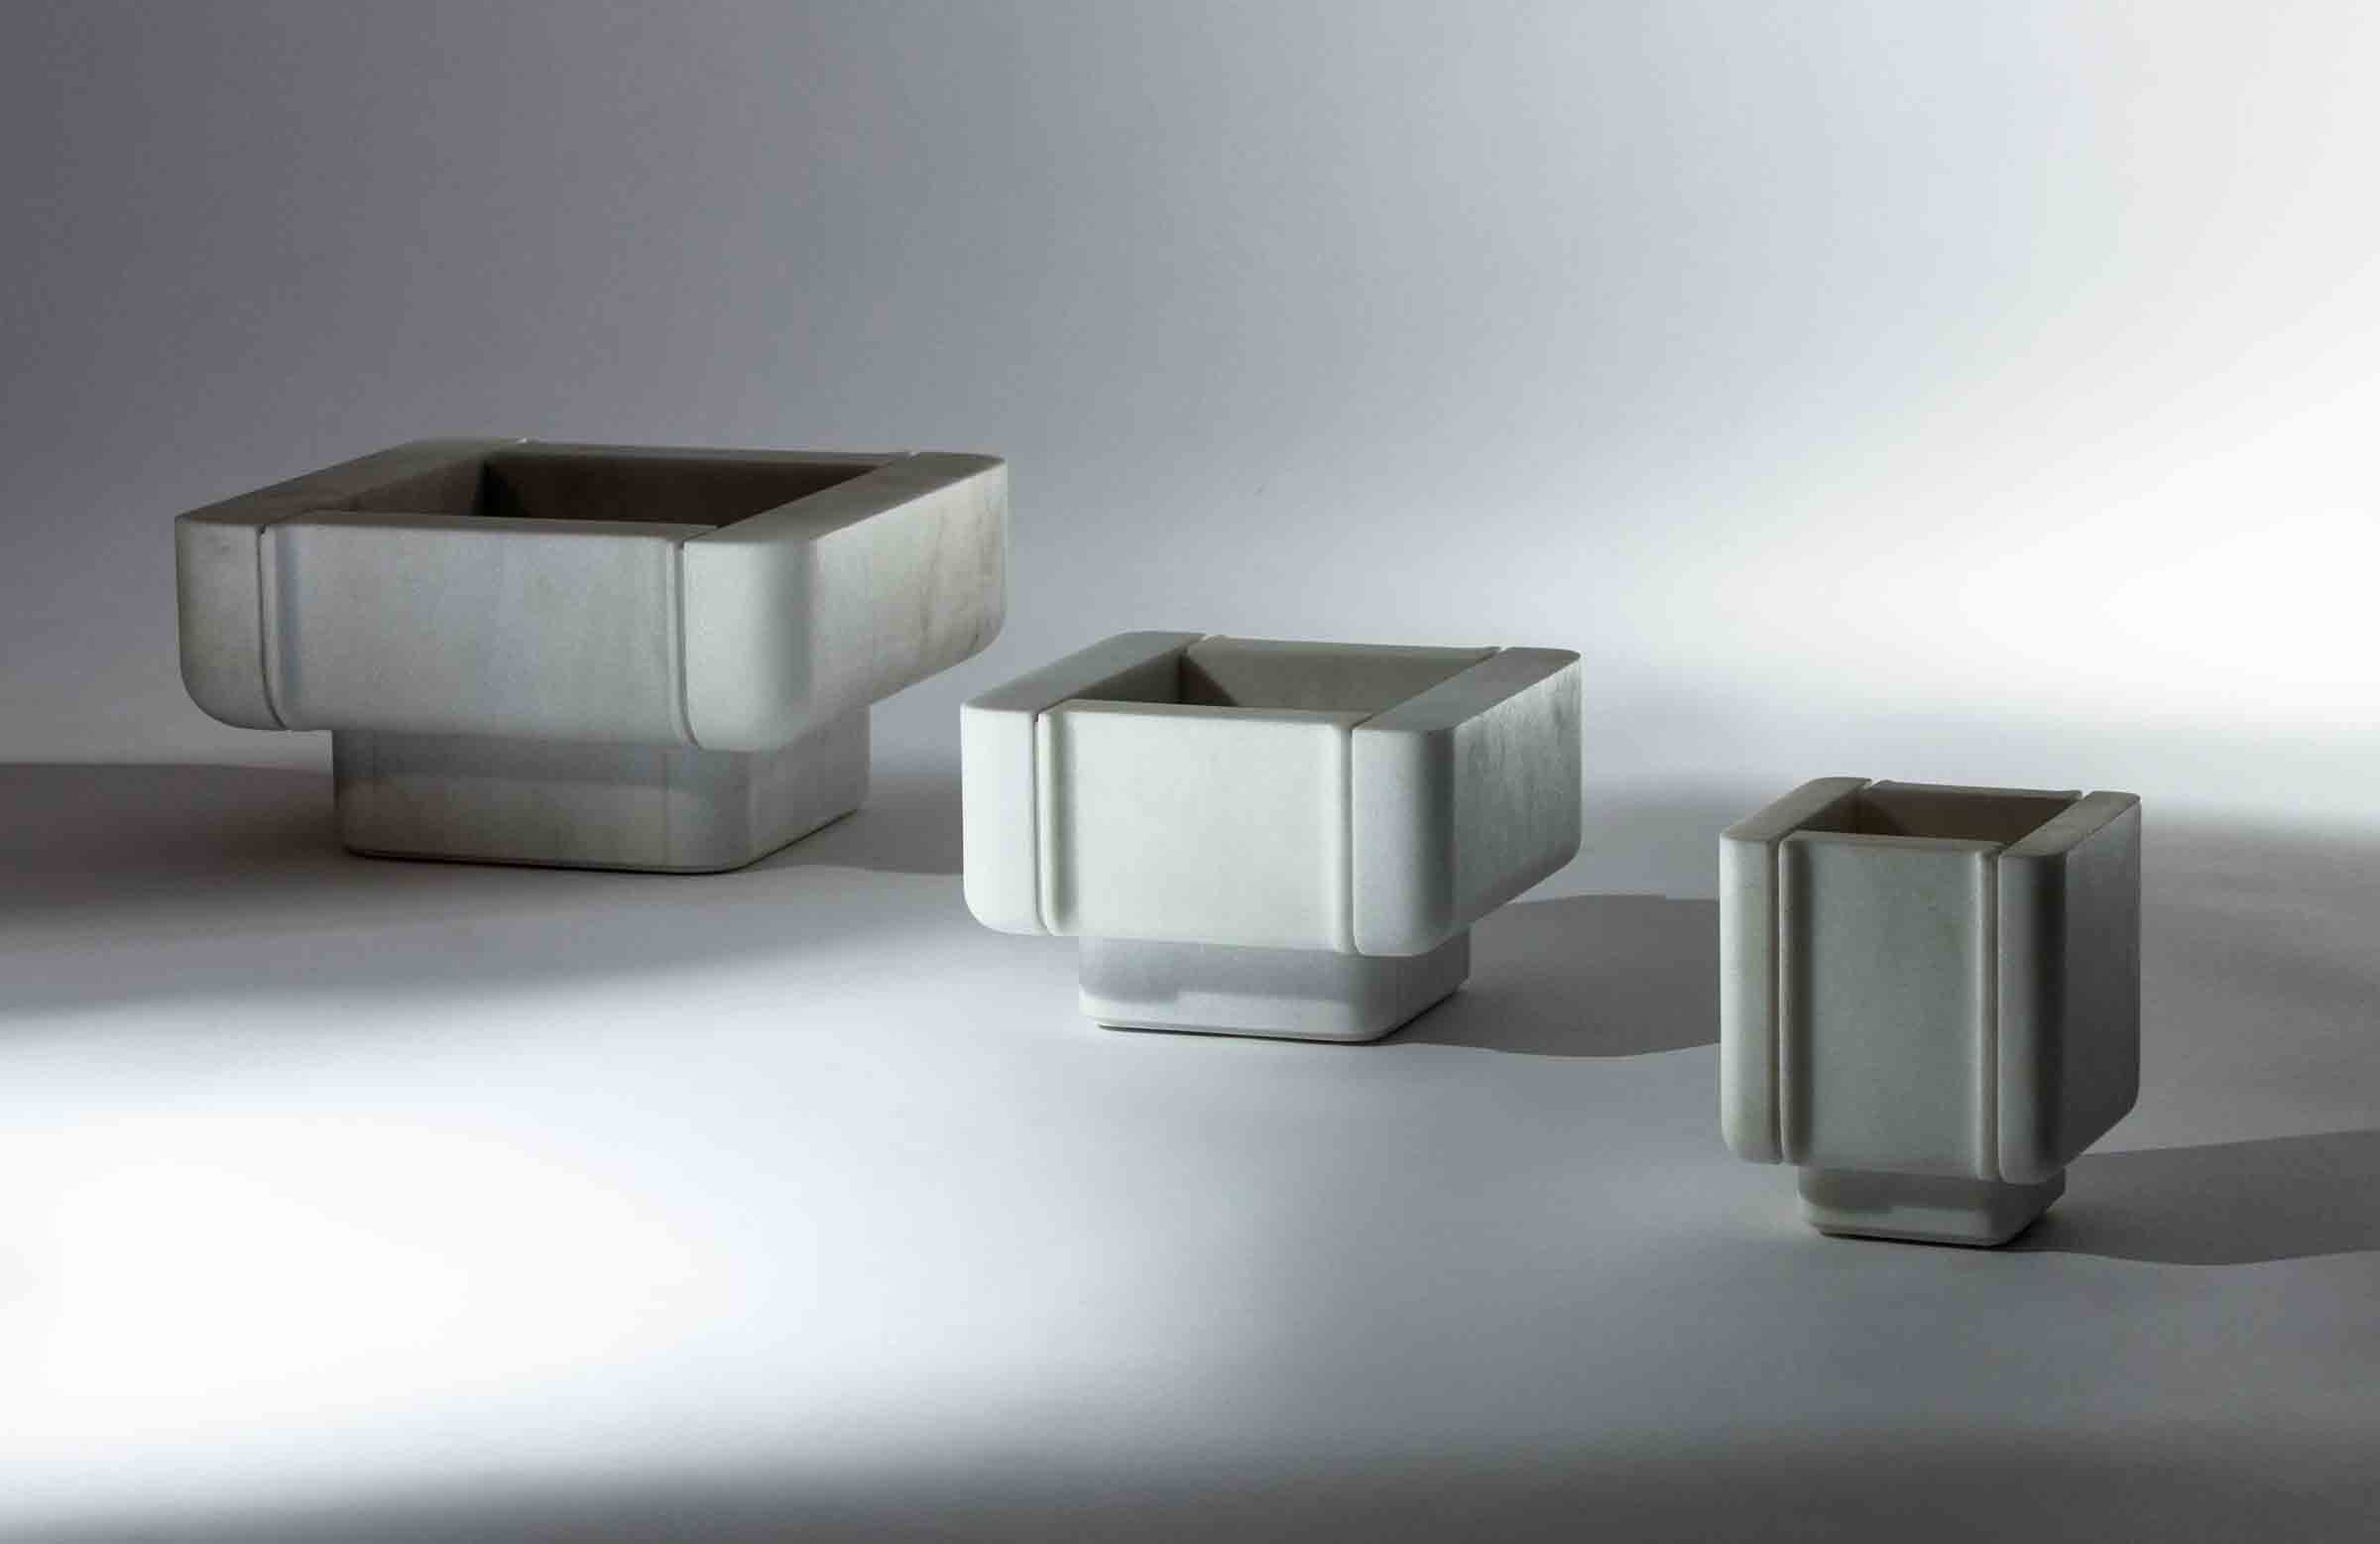 Marble vessels, designed by Thierry Lemaire for Blanc Carrare